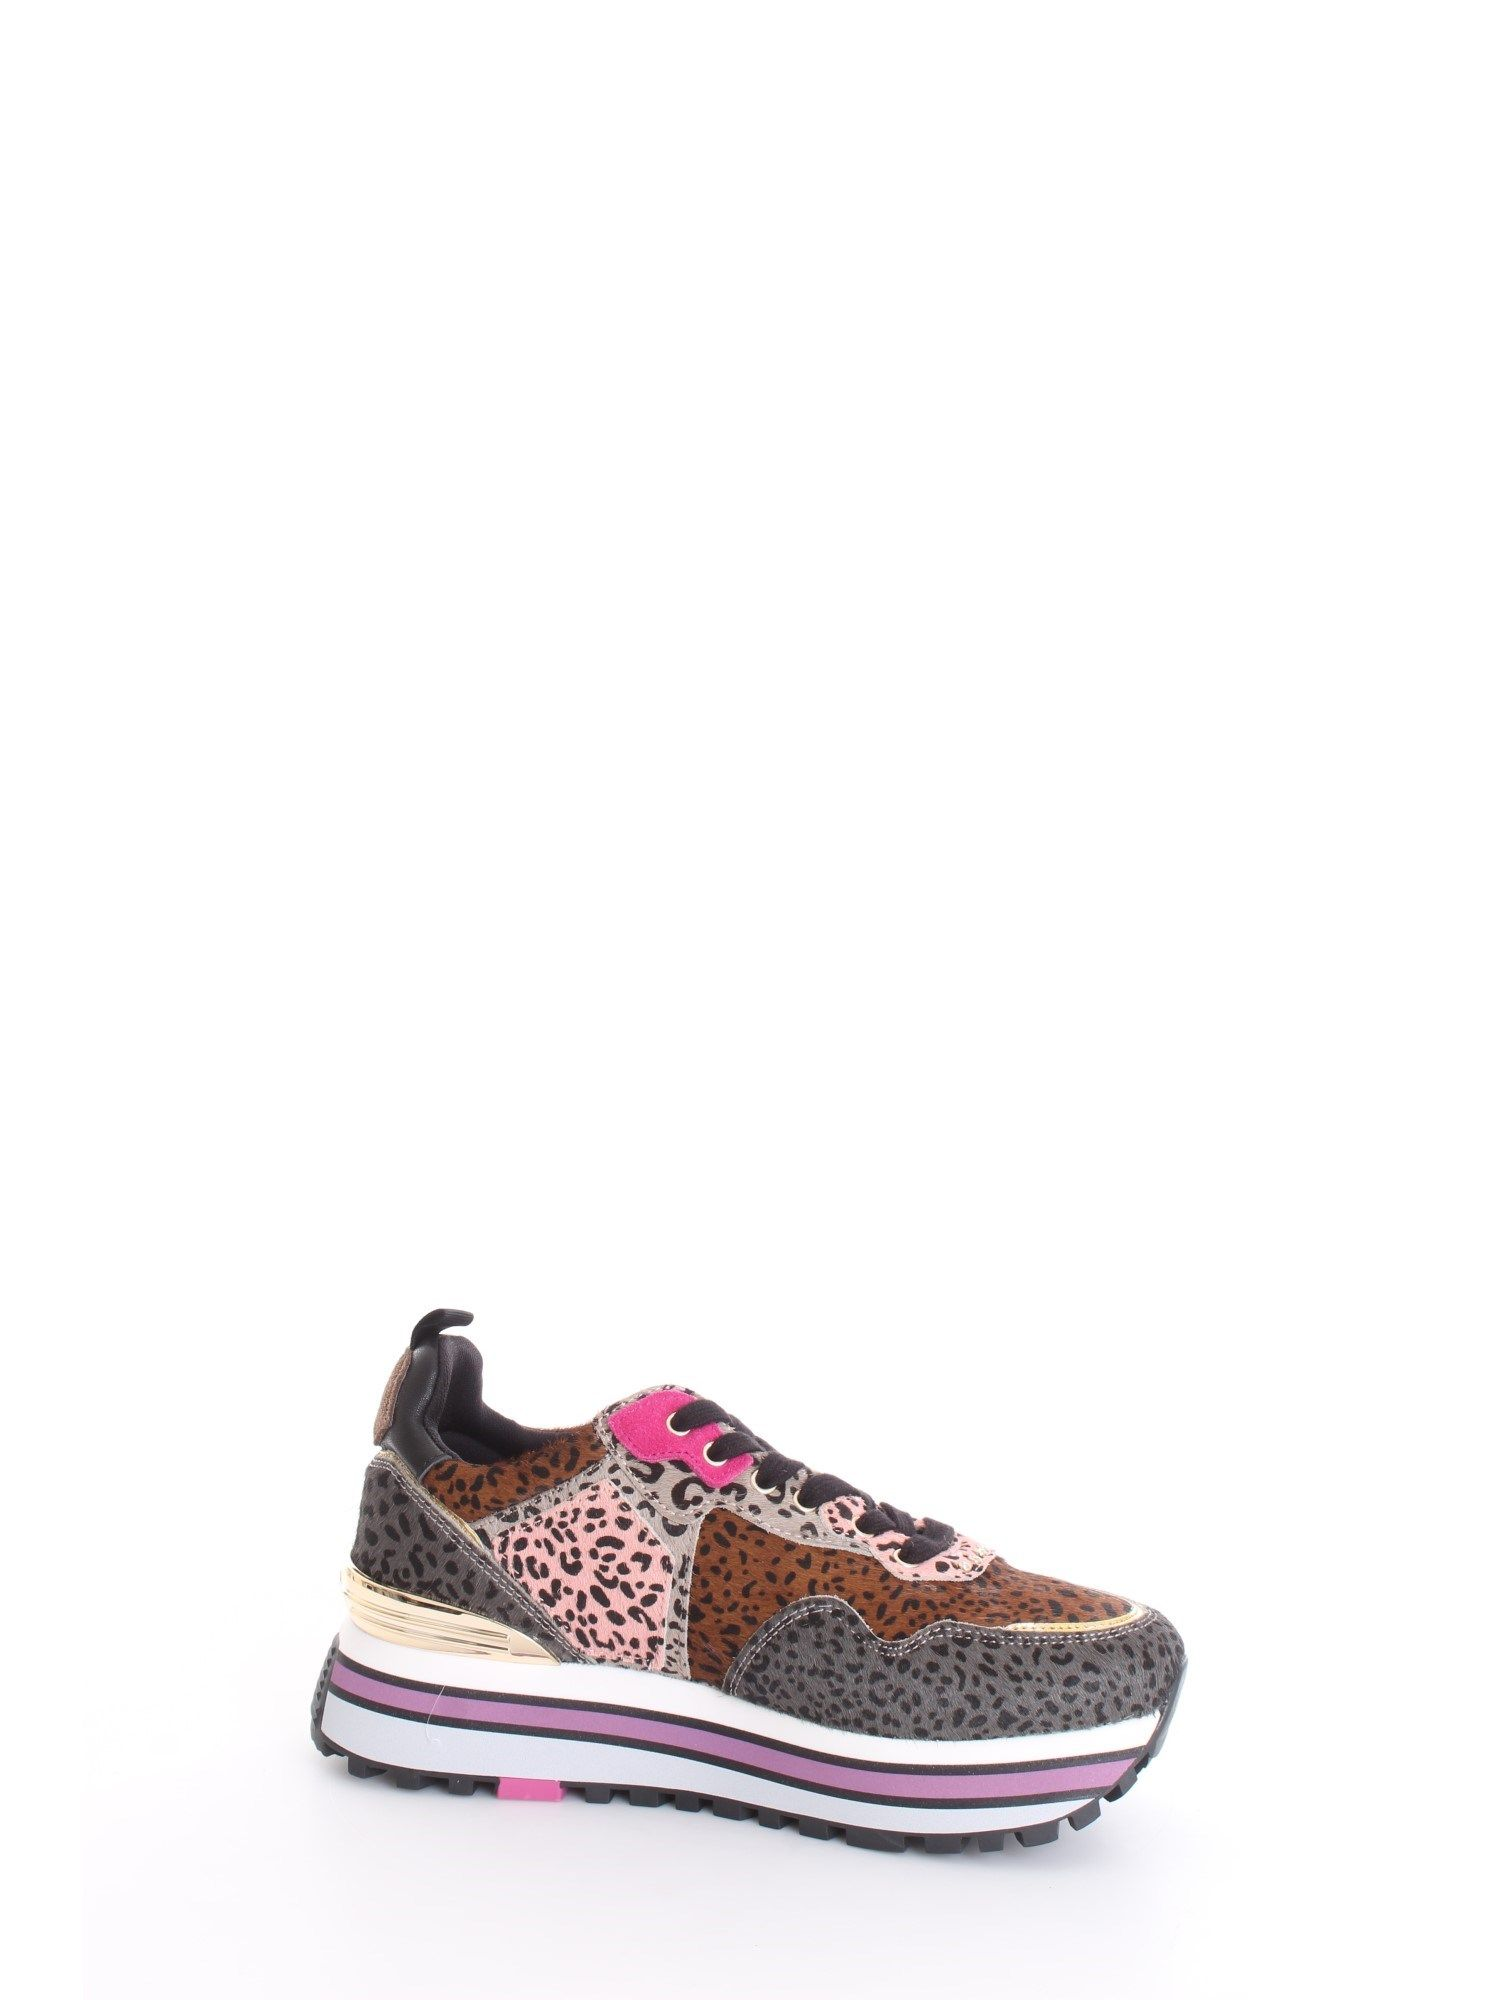 Liu •jo LIU JO WOMEN'S BROWN SNEAKERS